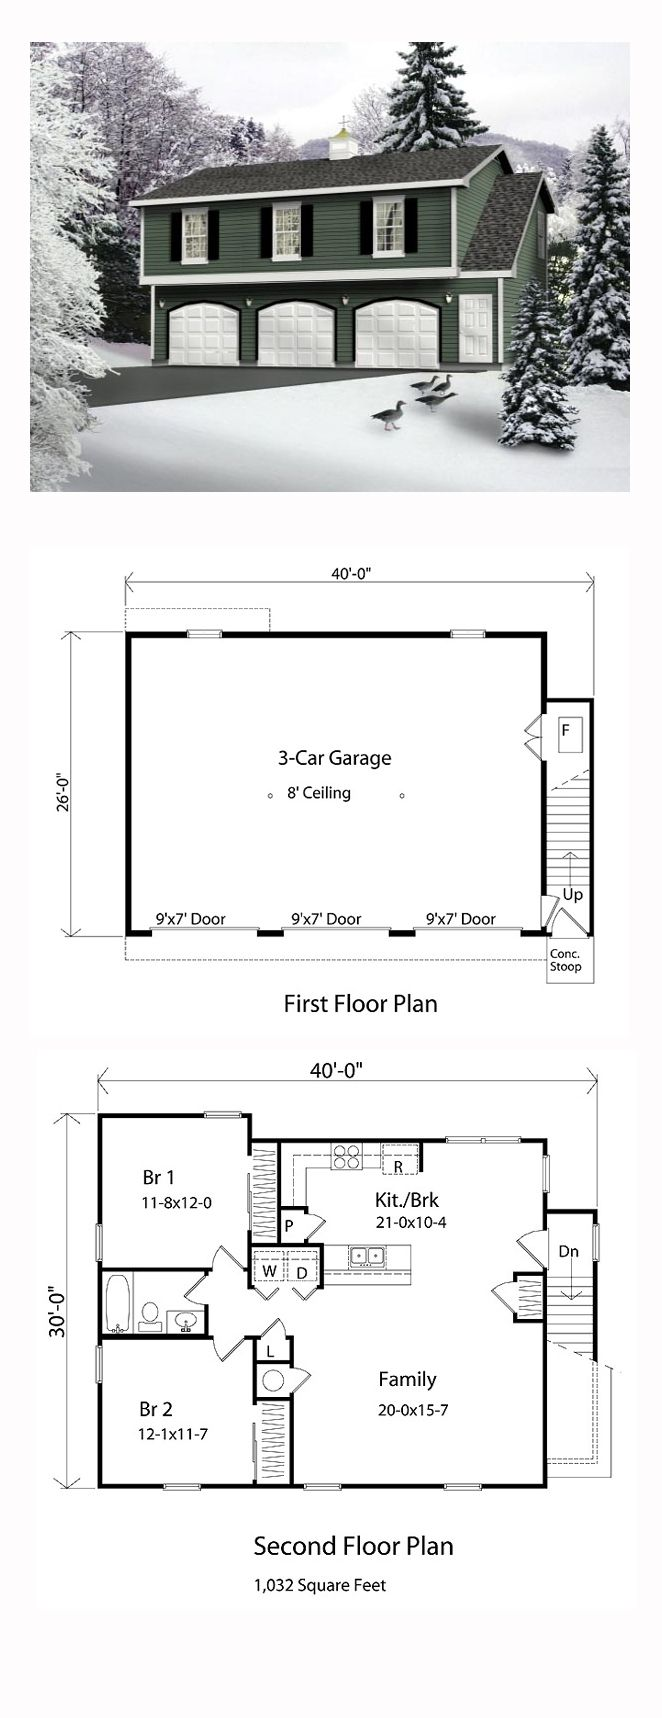 Garage Apartment Plan 49029 | Total Living Area: 1032 Sq. Ft., 2